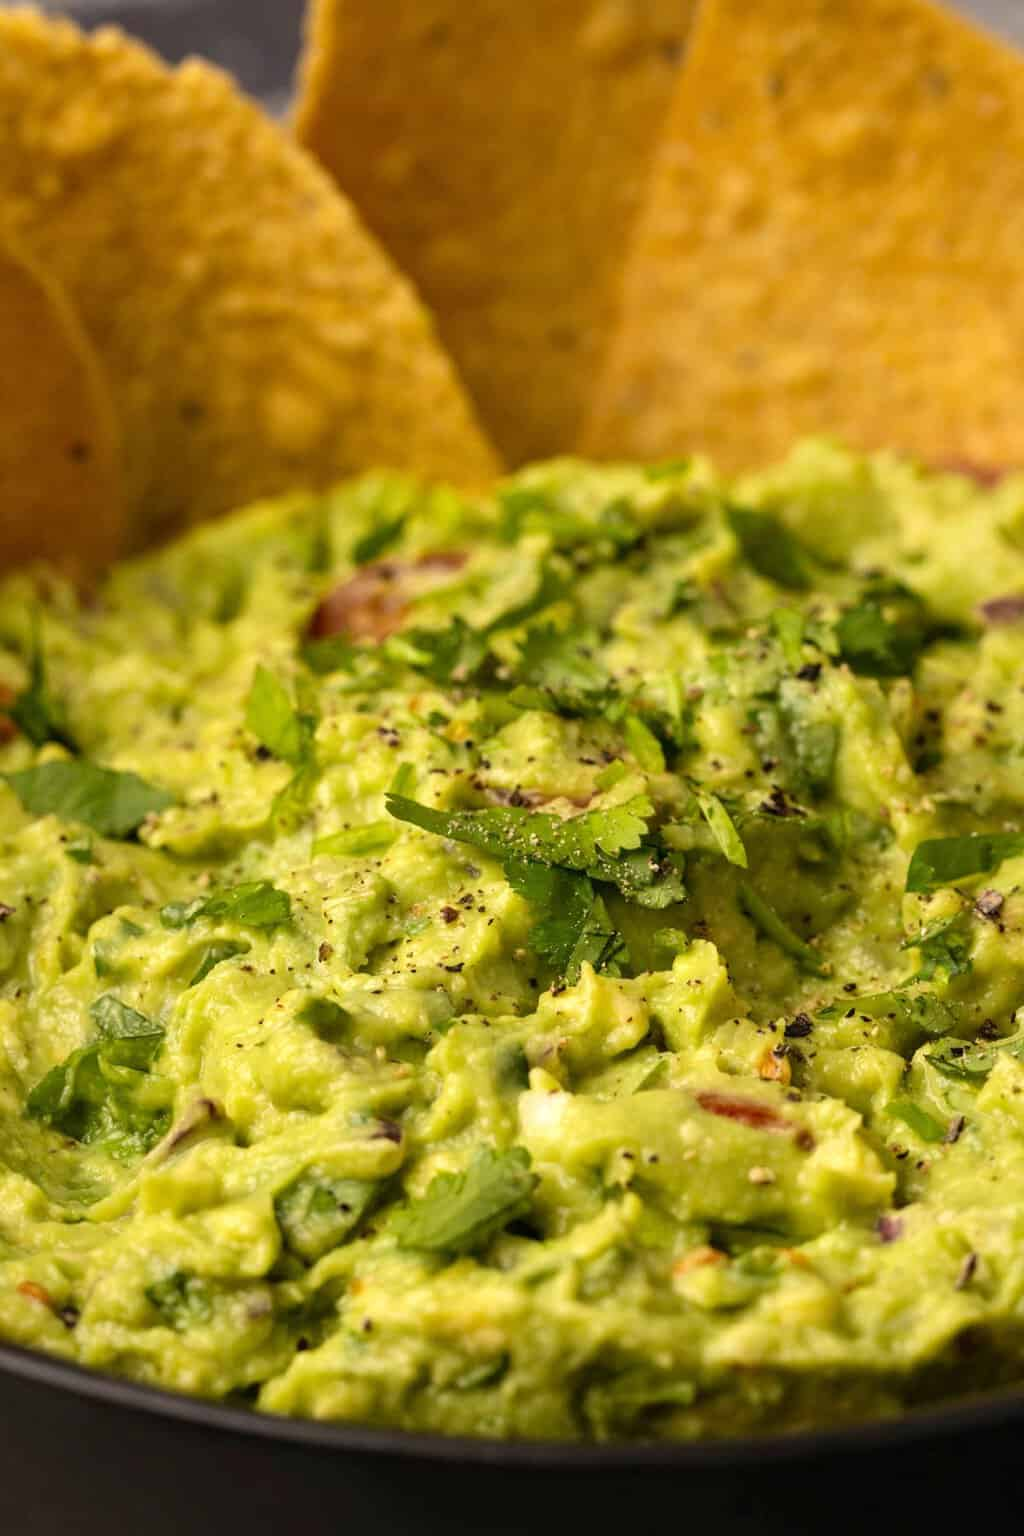 Vegan guacamole with tortilla chips.